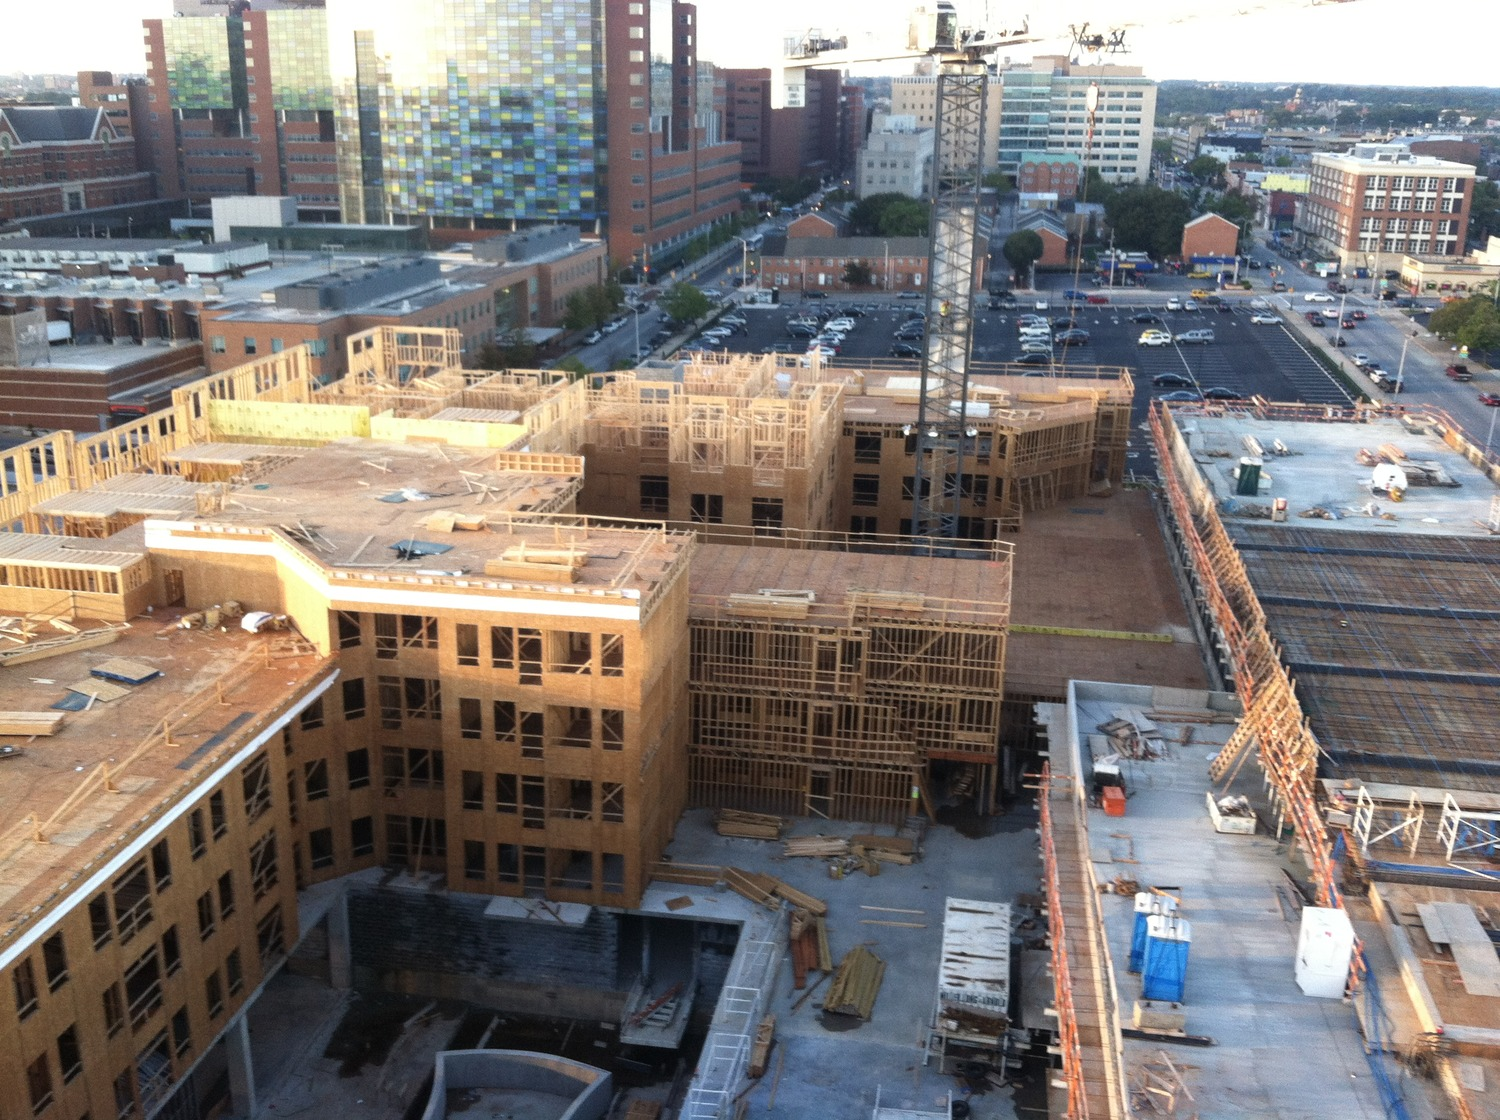 CBG builds Jefferson Square at Washington Hill, a 304-Unit Mixed-Use Apartment Community with Cast-in-Place Parking Garage in Baltimore, MD - Image #3